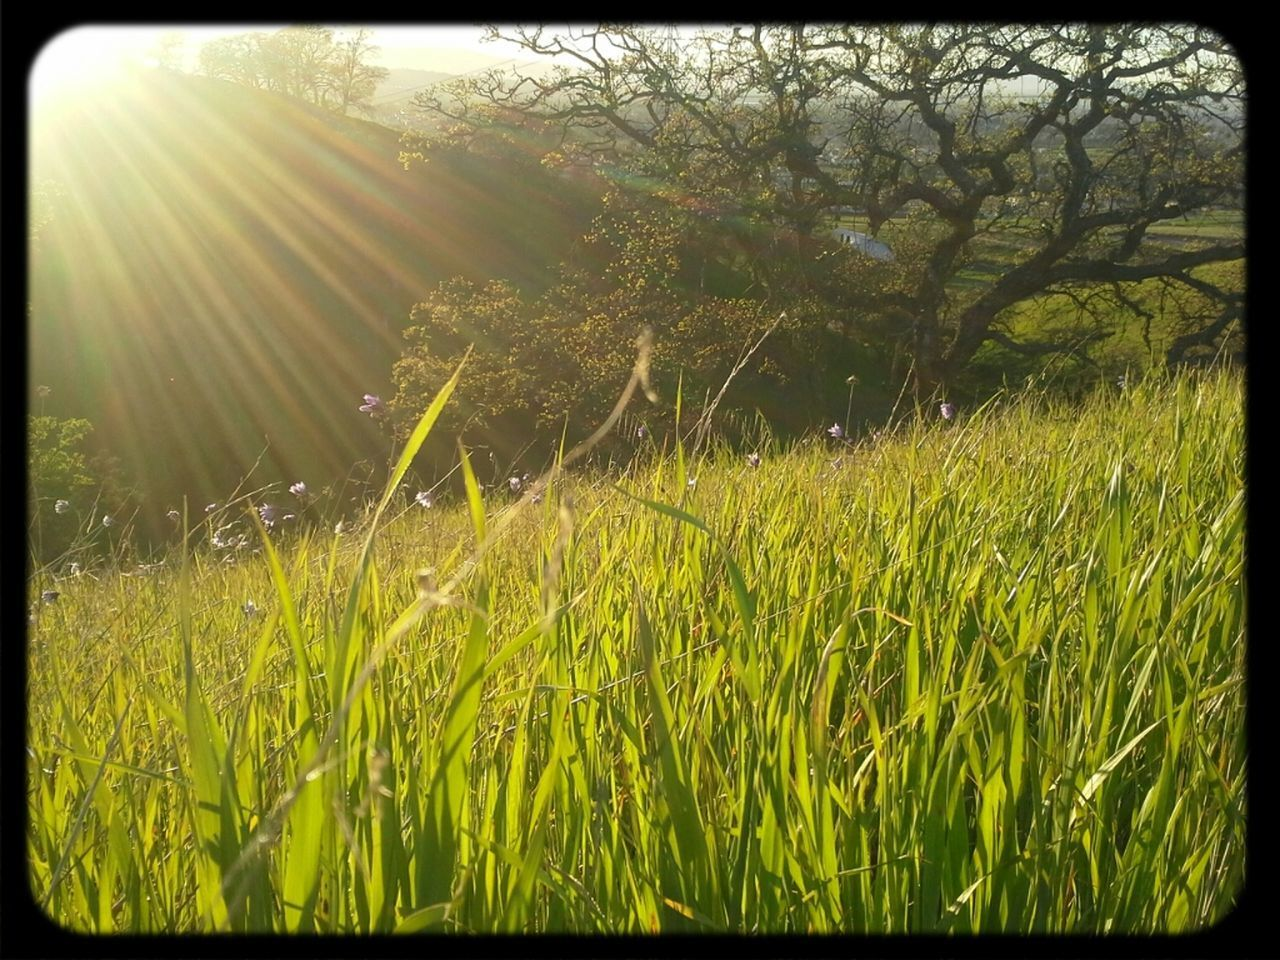 growth, grass, field, nature, tranquility, beauty in nature, no people, tranquil scene, outdoors, day, sunlight, landscape, scenics, agriculture, plant, rural scene, tree, freshness